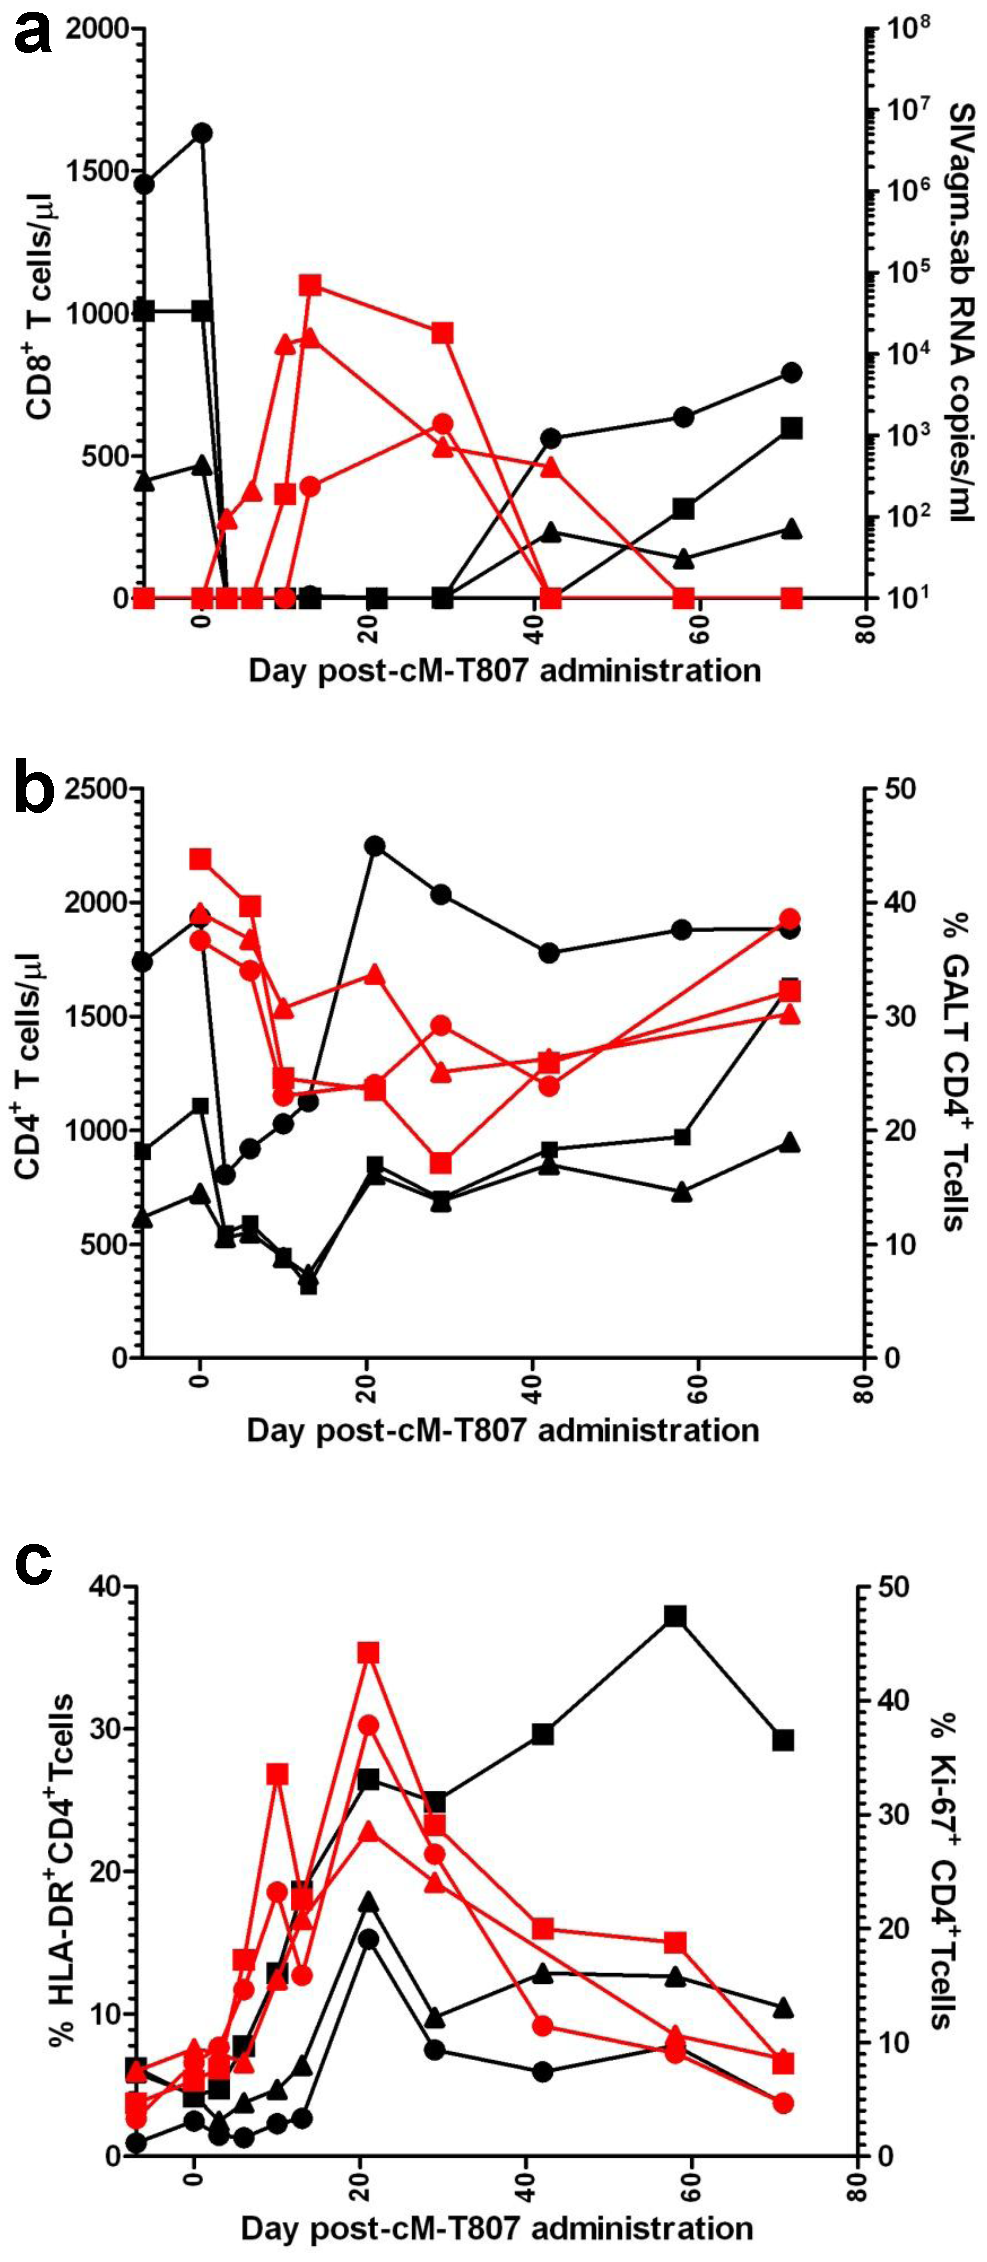 Administration of cM-T807 depleting antibody resulted in a rebound of plasma VLs in all three SIVagm-infected RMs.